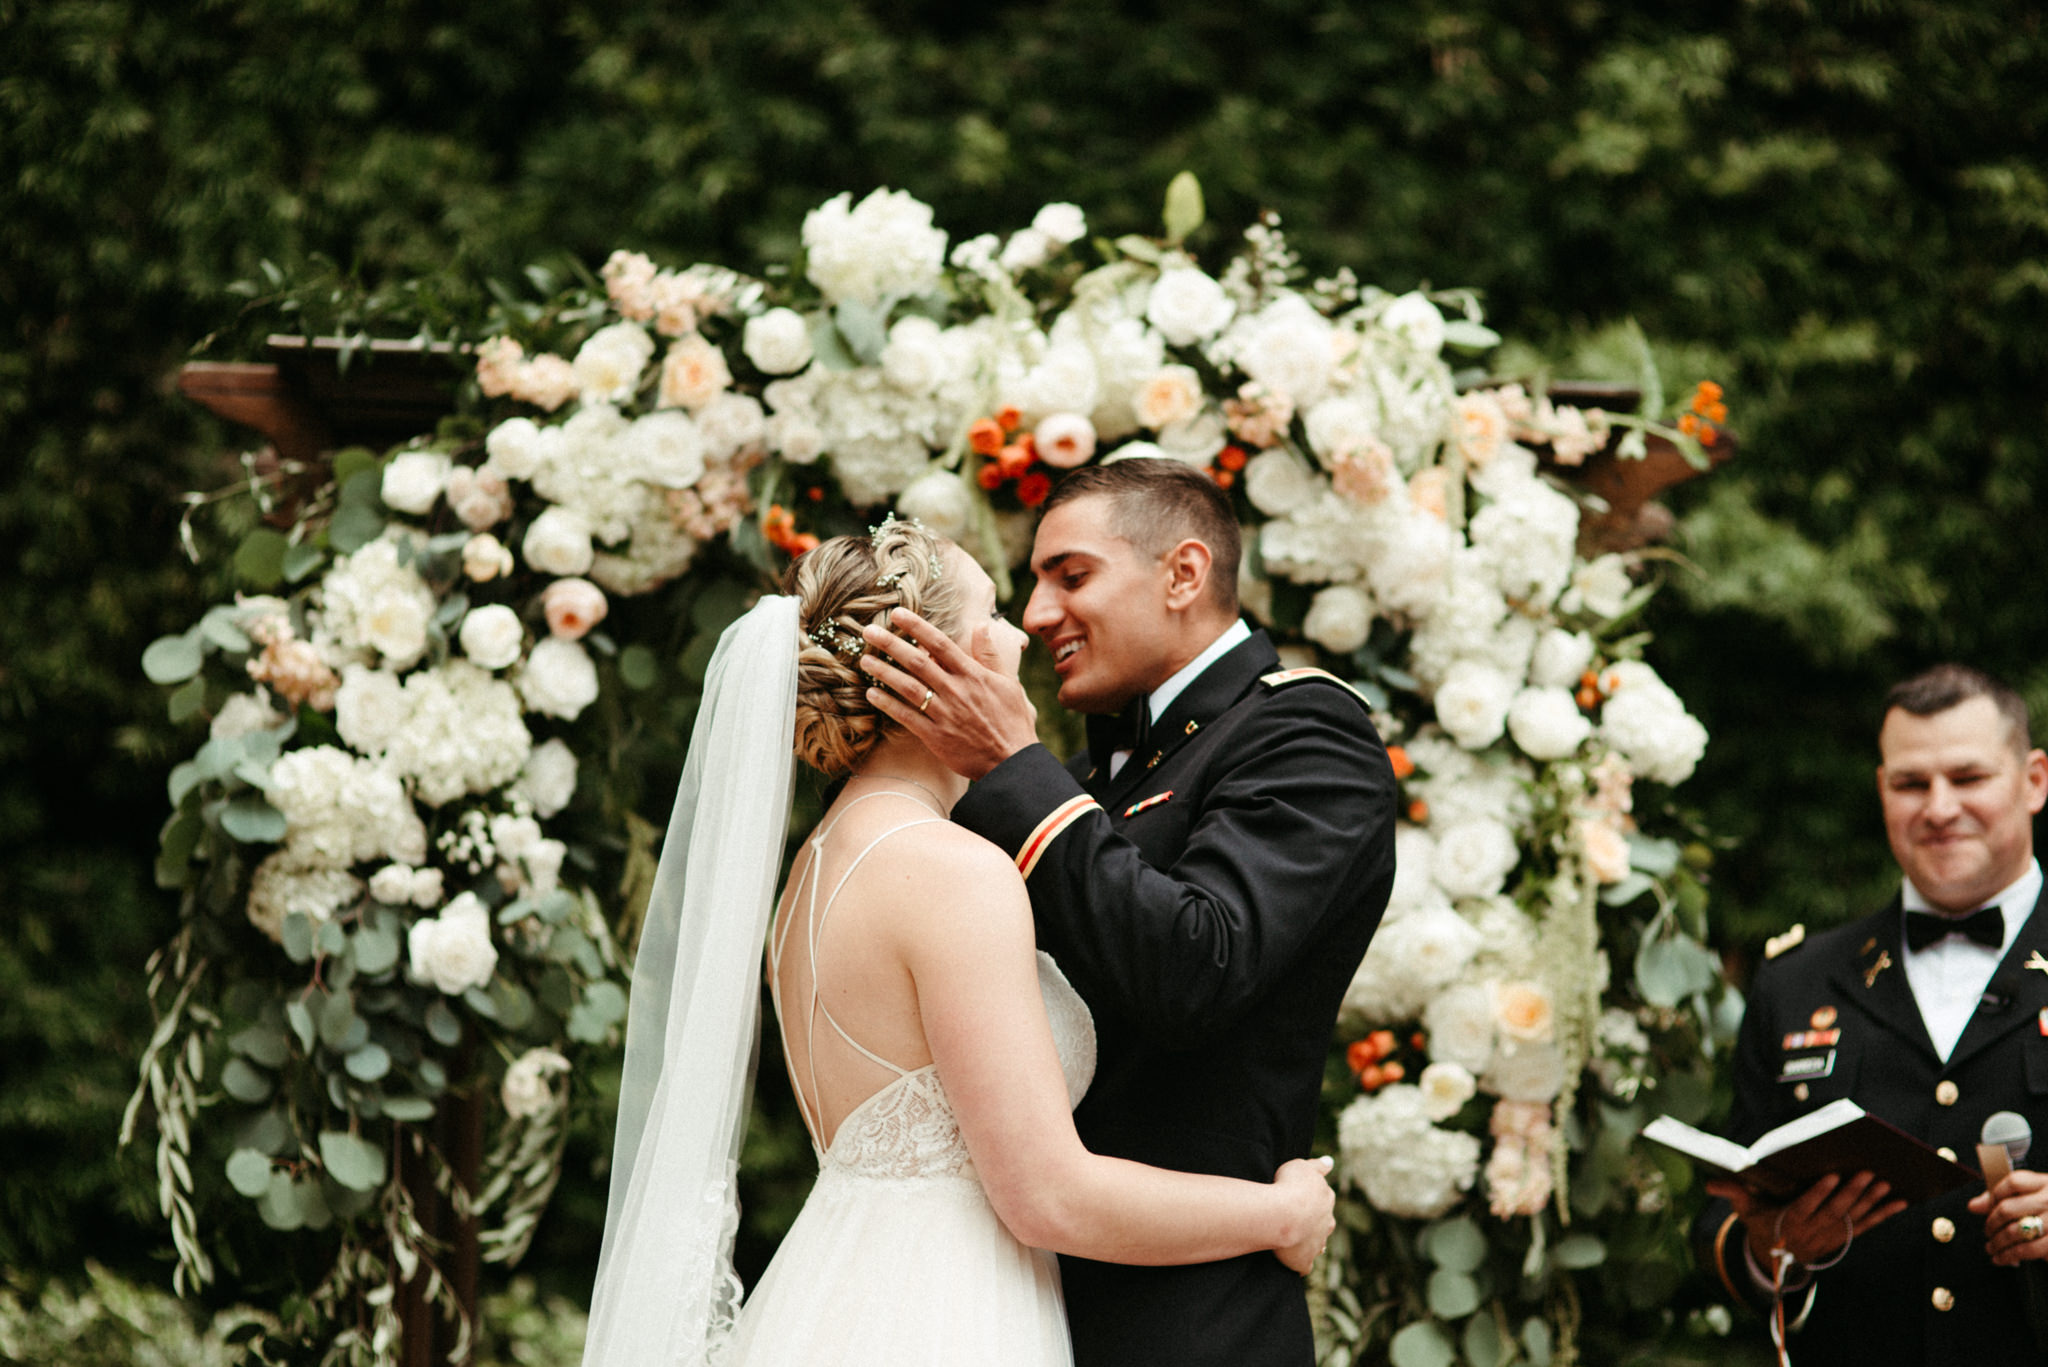 Zach and Rosalie - Franciscan Garden Wedding - San Juan Capistrano - The Mission - Southern California Wedding Photographer-2613.jpg